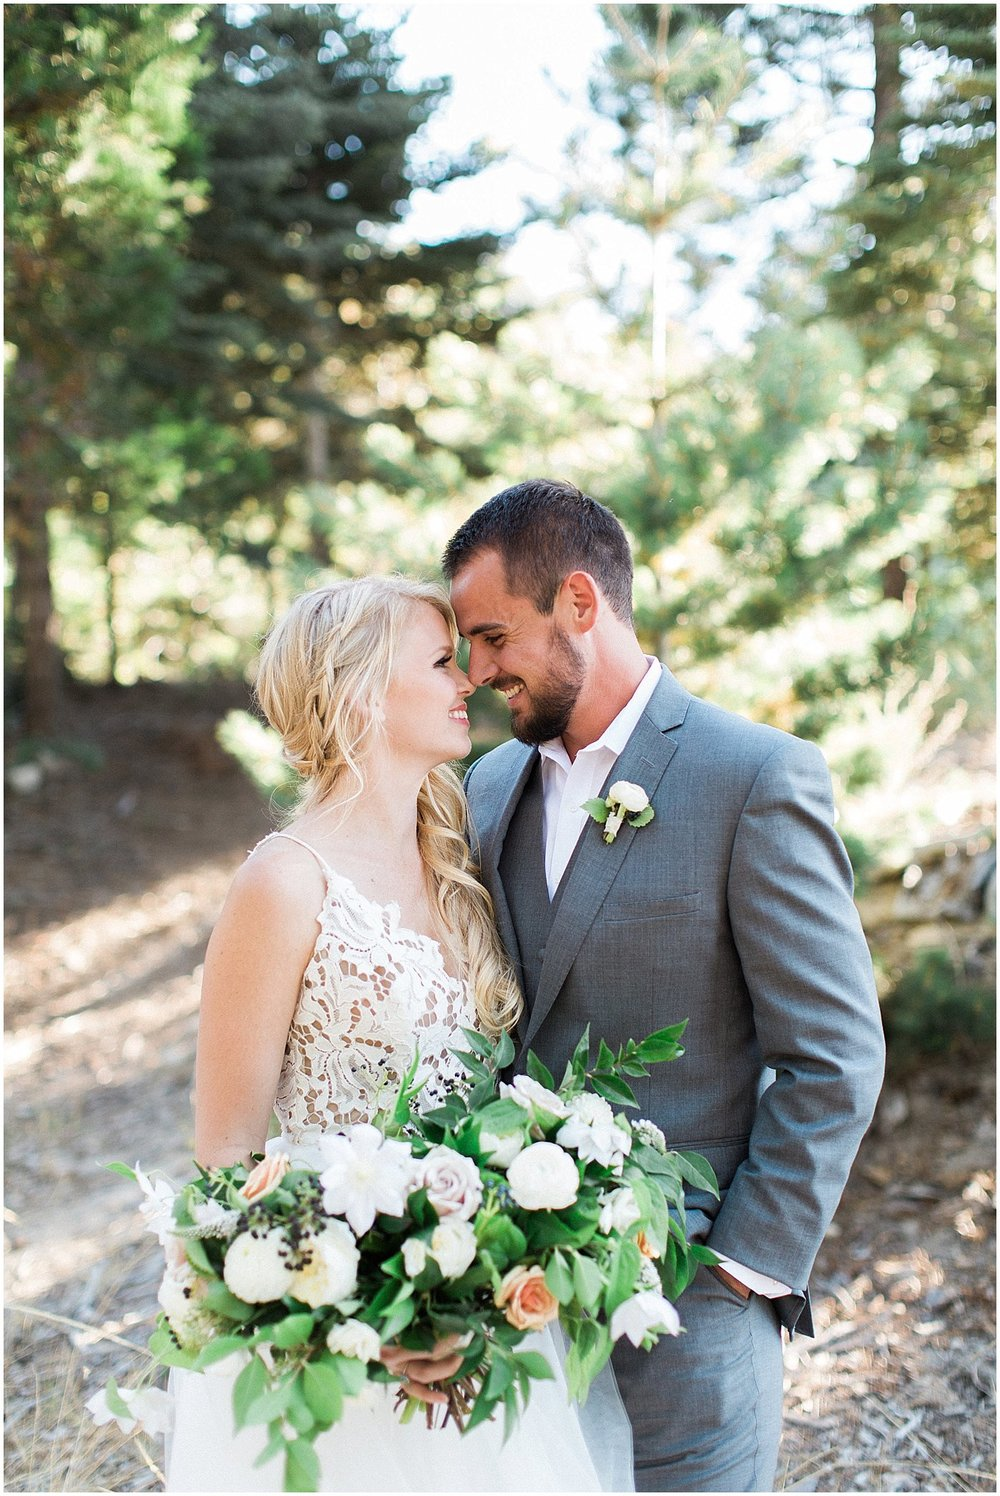 10 Year Anniversary Session by Jenna Joseph Photography featured on Style Me Pretty | Scottsdale Wedding Planner | Megan Dileen Events